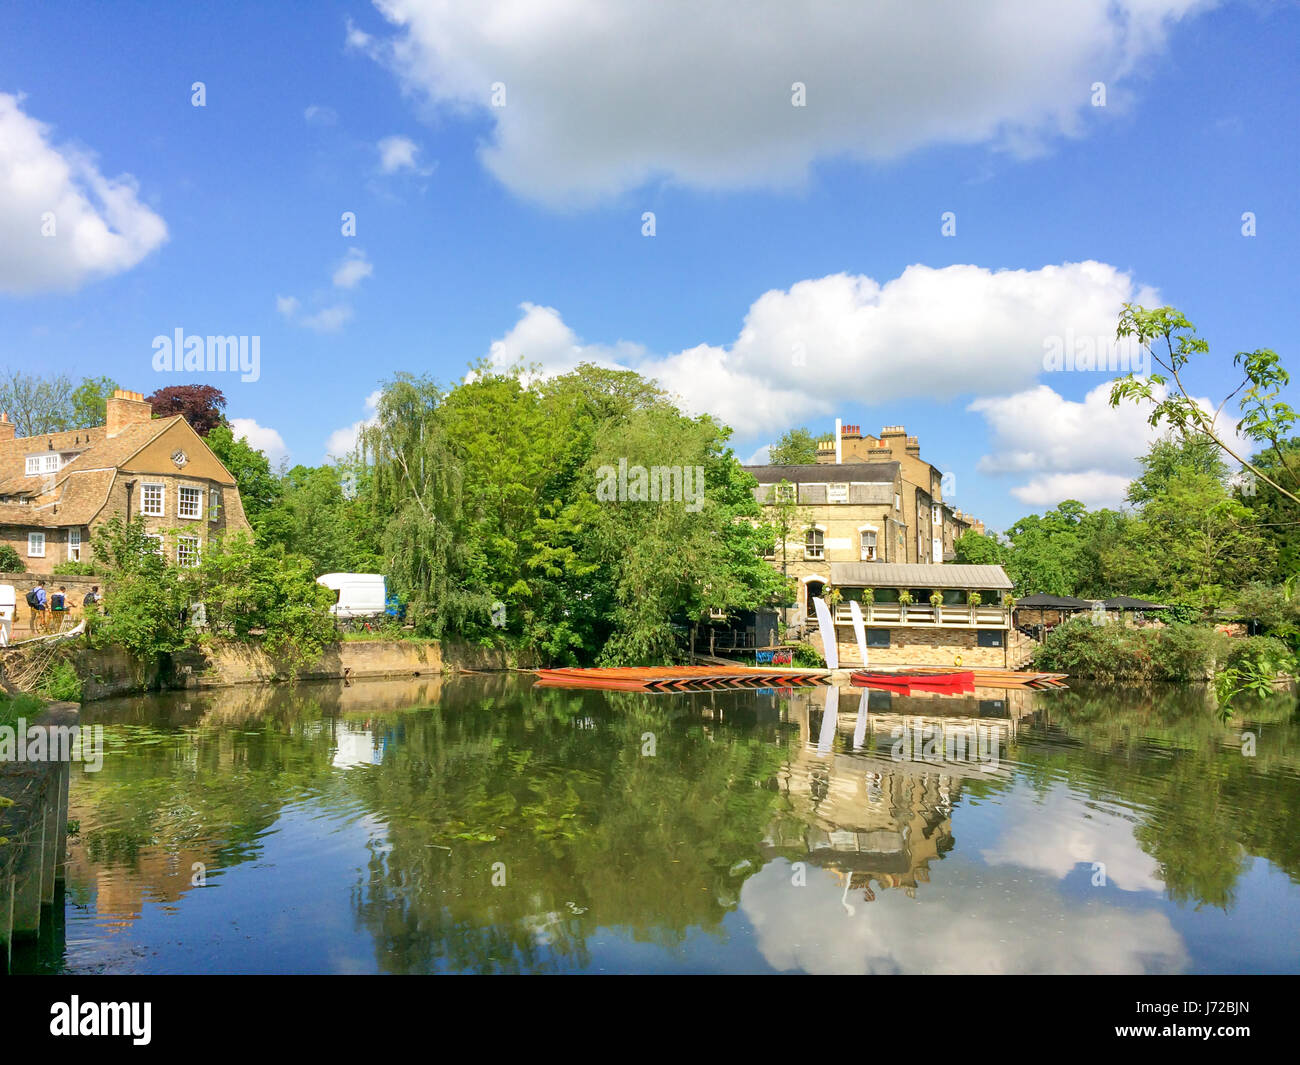 View of the river Cam with punt boats in Cambridge, UK - Stock Image